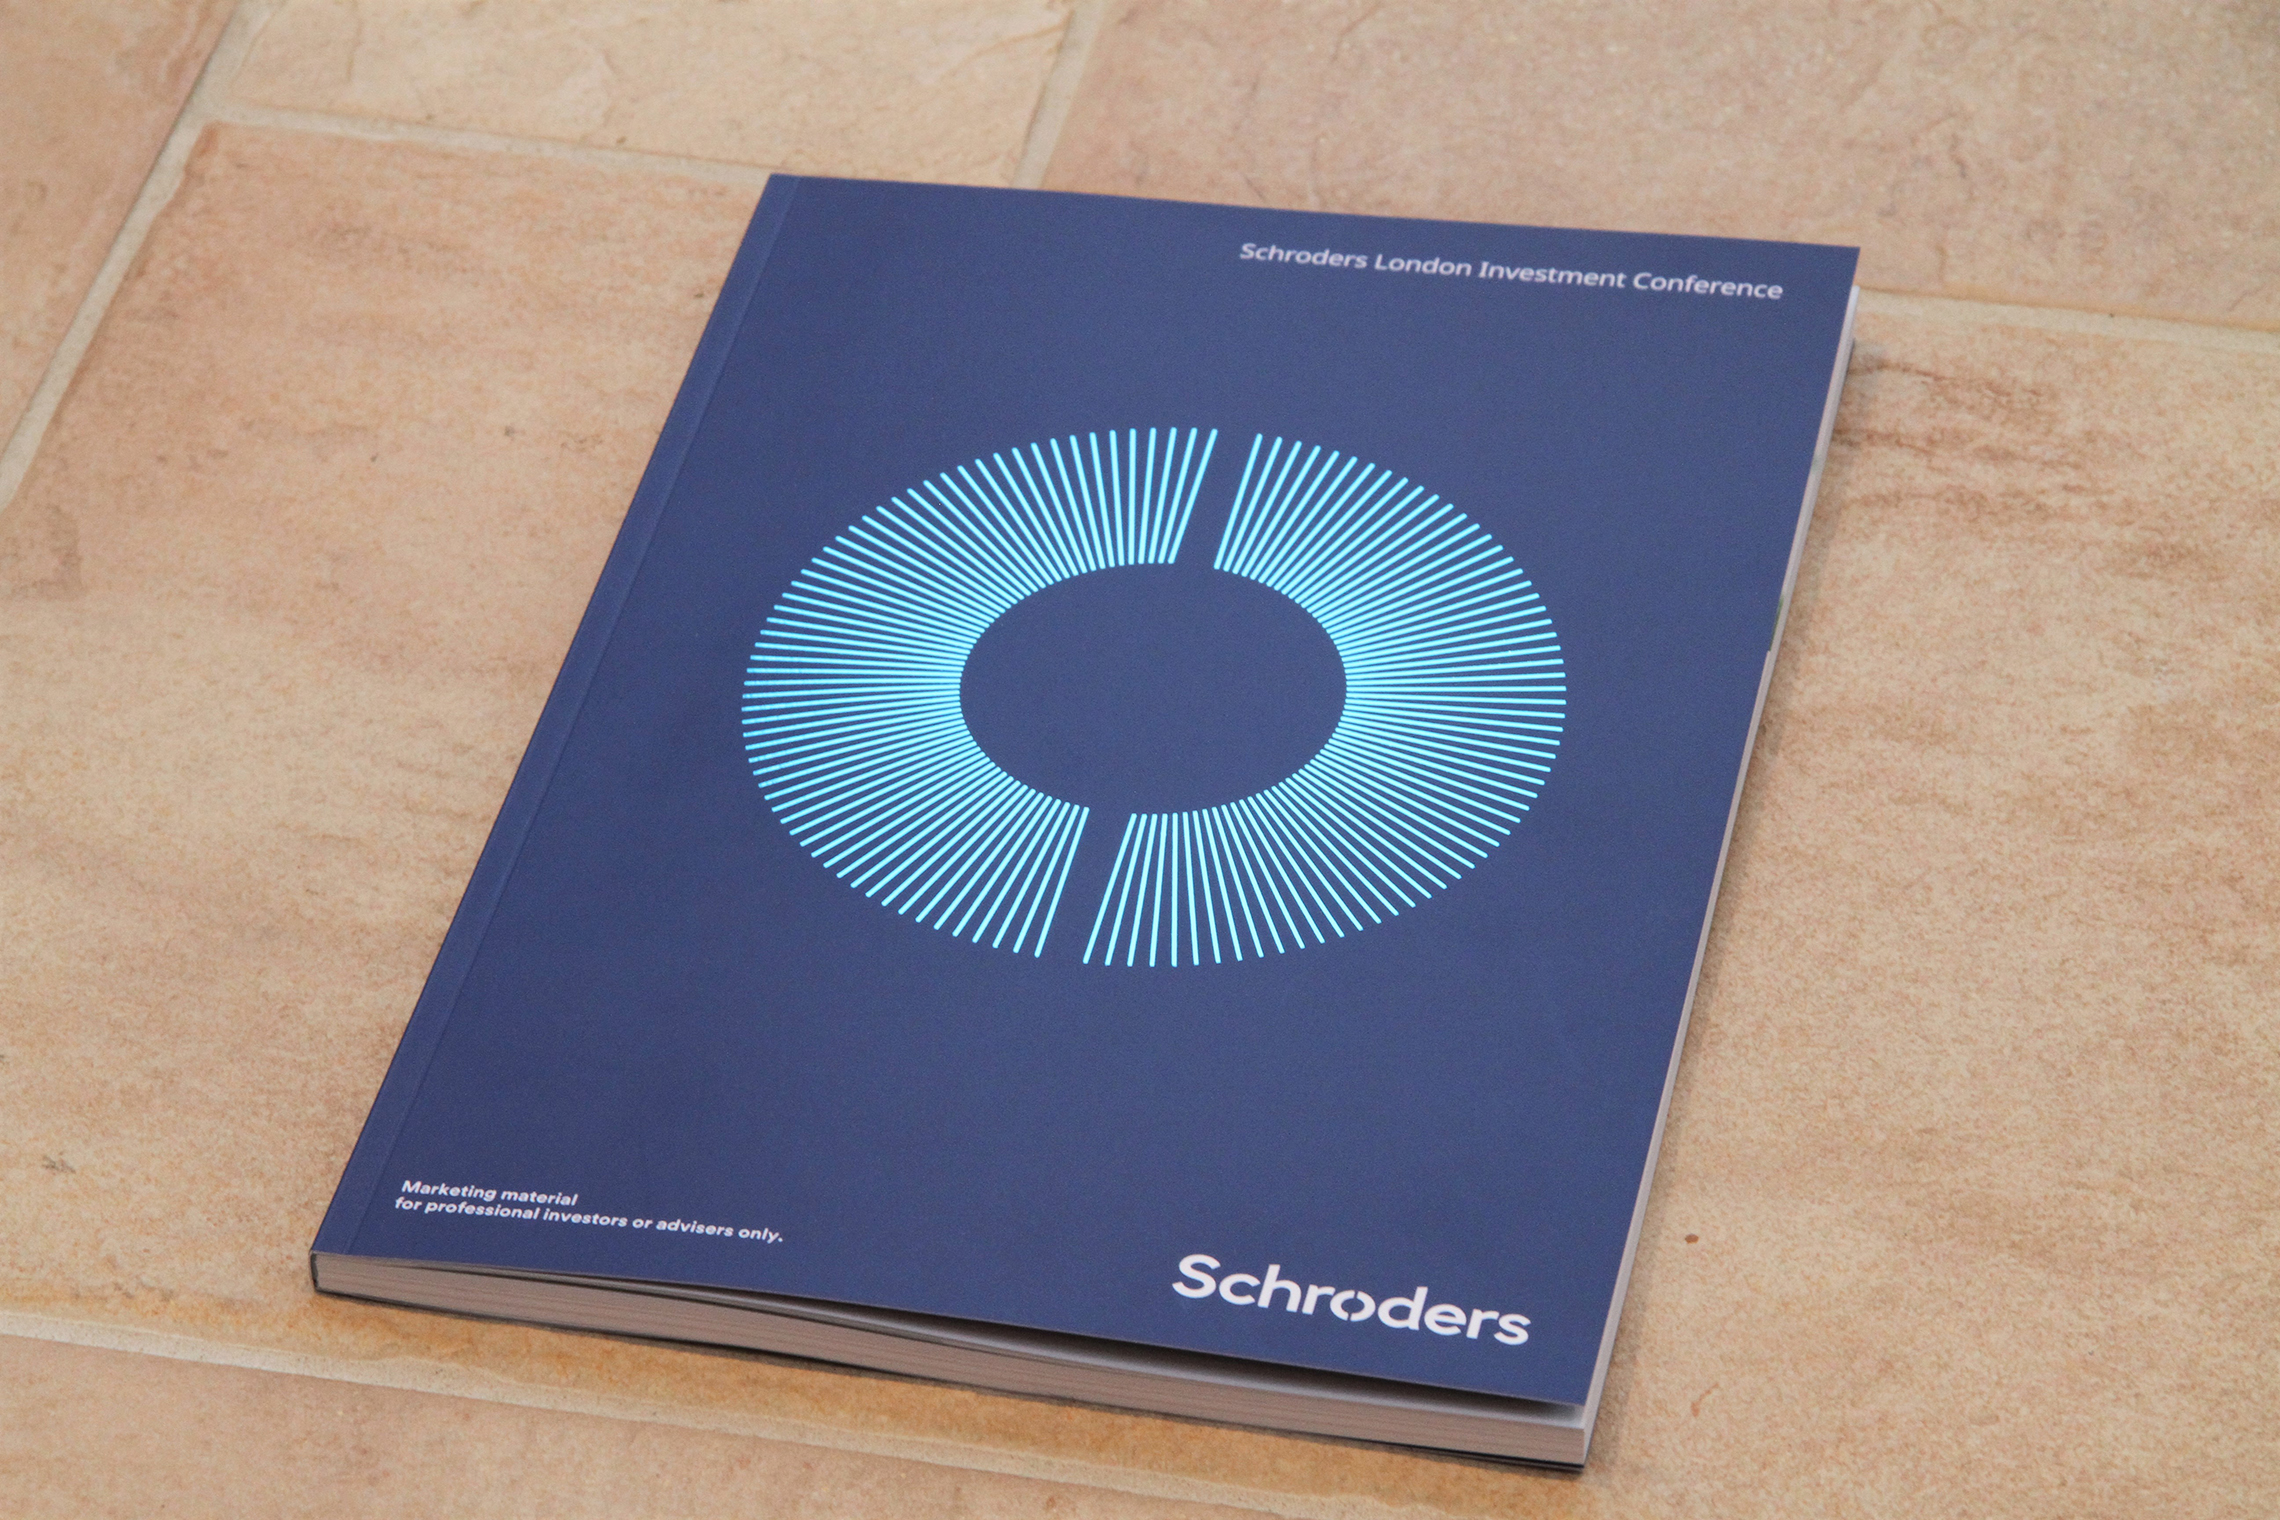 Schroders: sustainably printed marketing material